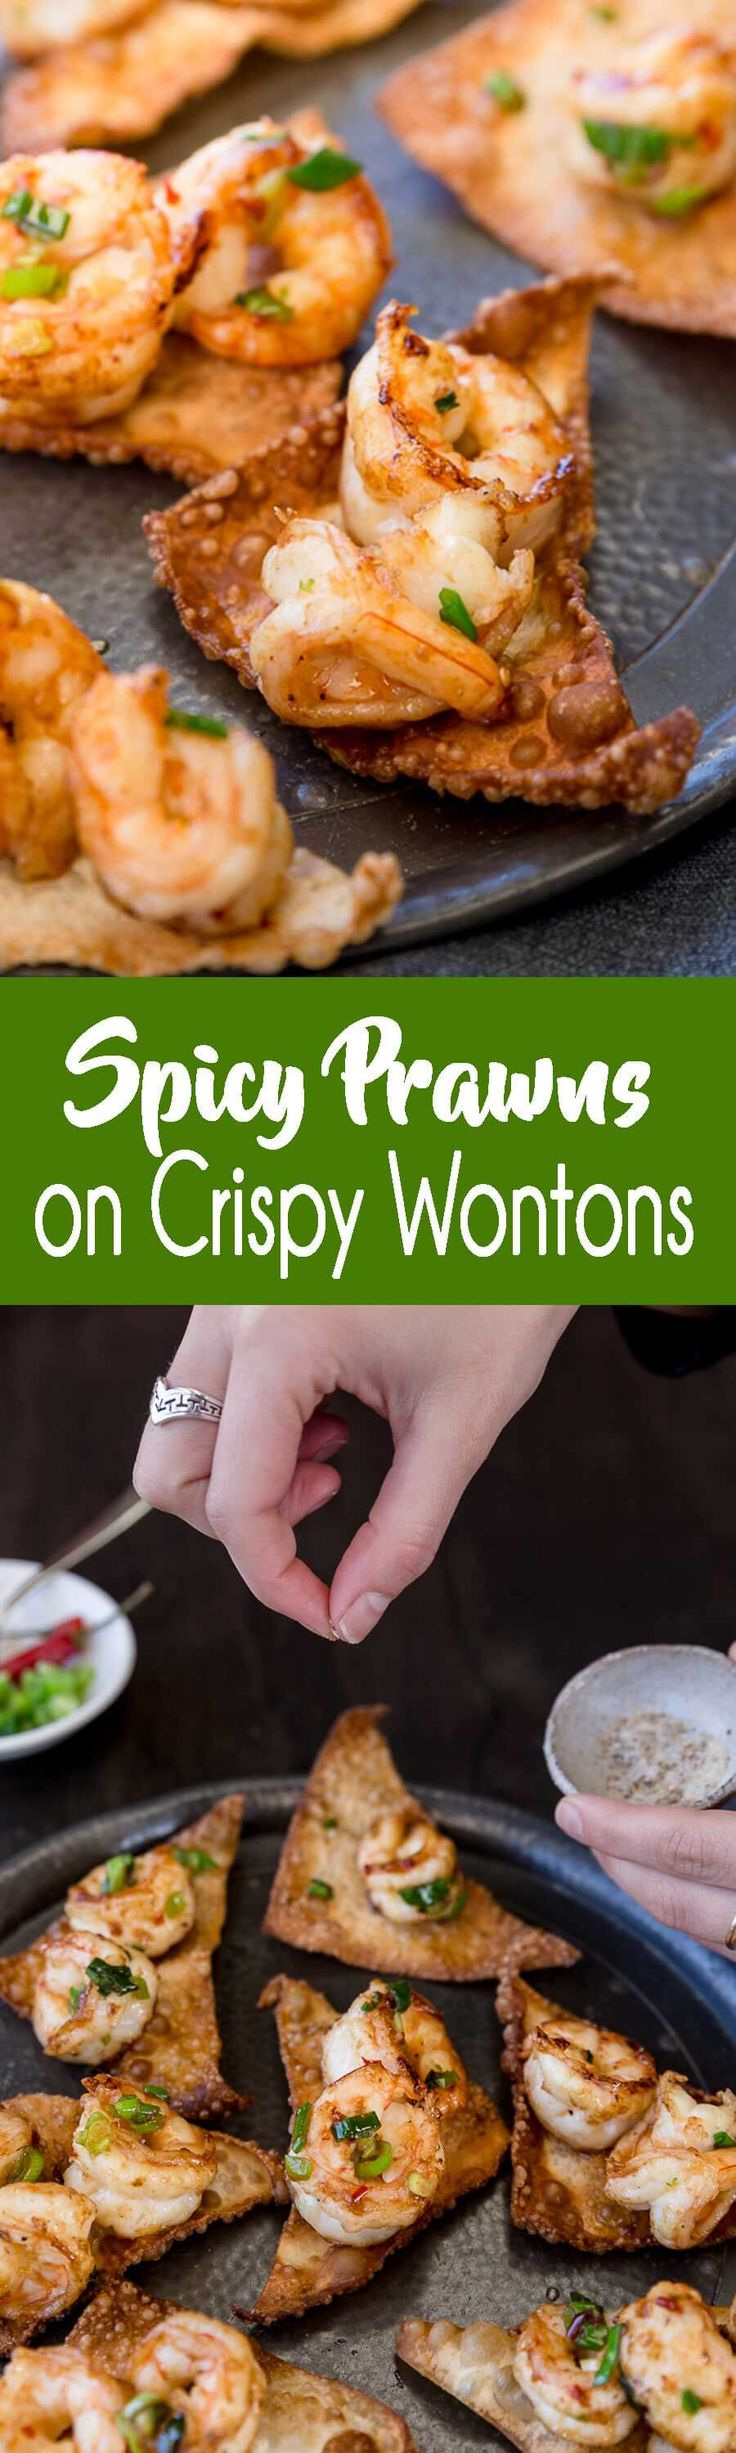 Anyone need a good appetizer for football season? How about these amazing spicy prawns on crispy wontons? Soooo good.